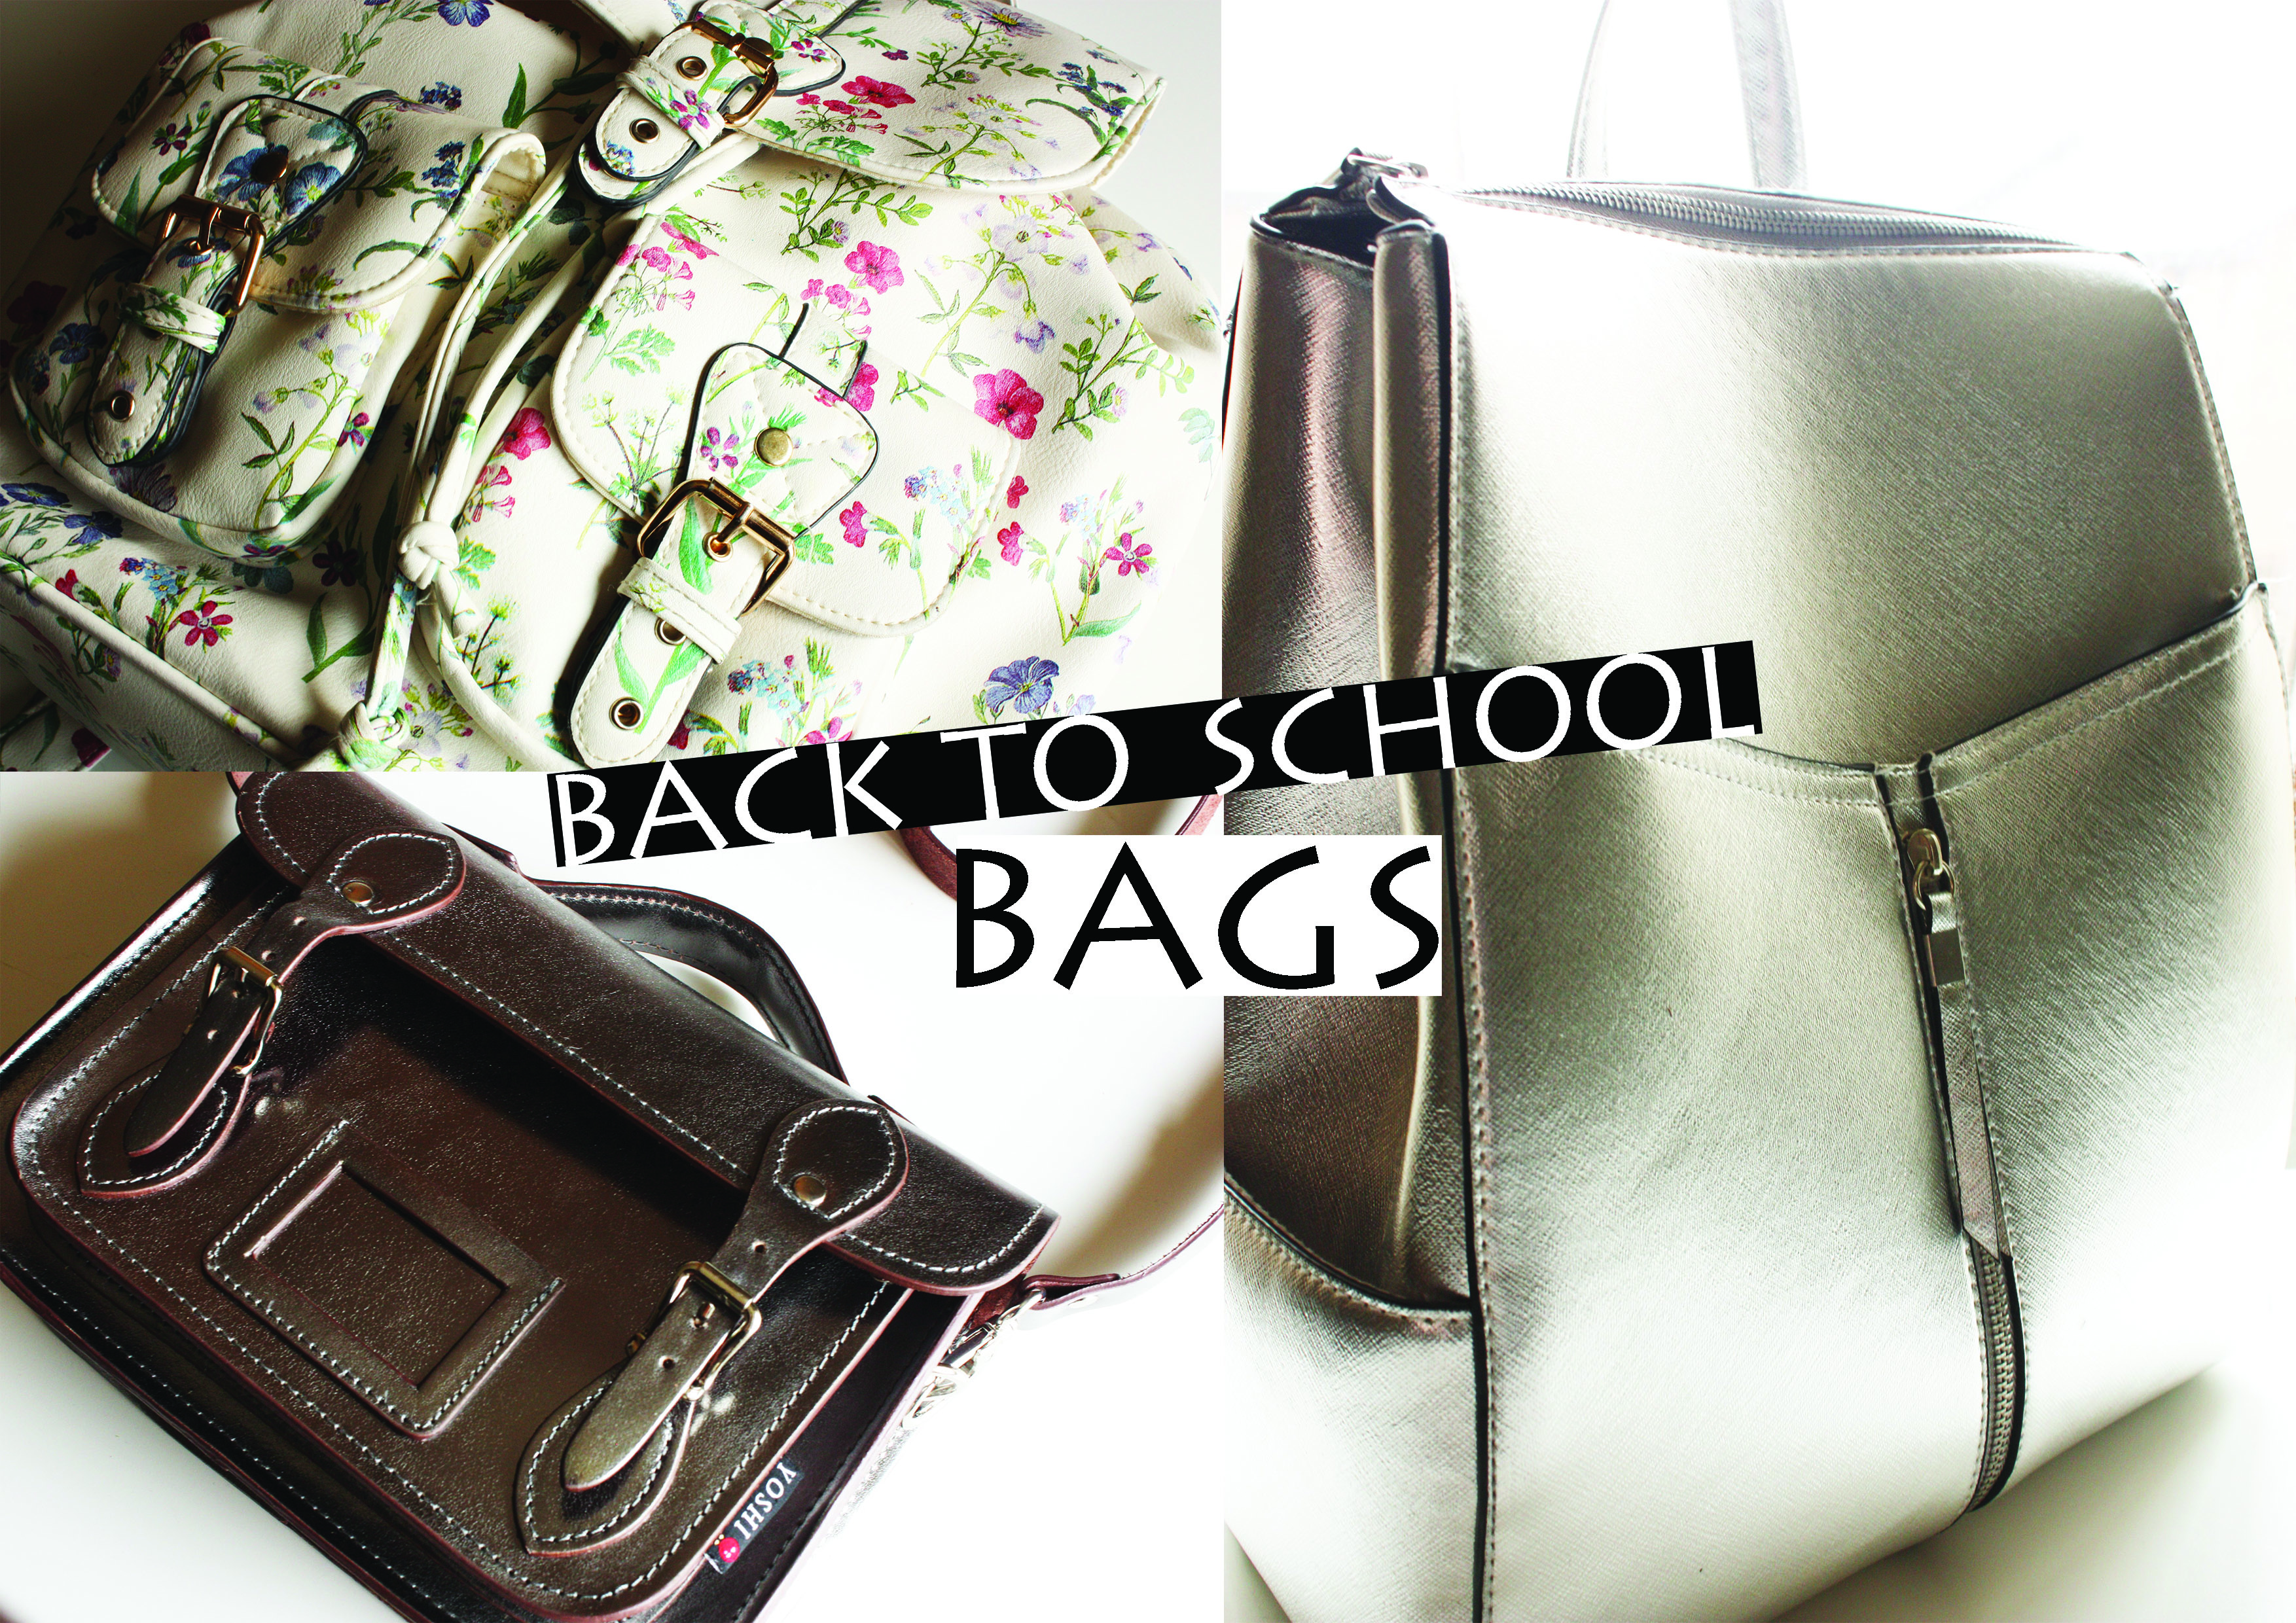 School bag for year 7 -  Is Slowly Approaching Again So Whether You Re Starting A New Year At High School Or Going Into Year 7 You Ll Probably Be Shopping Around For A New Bag